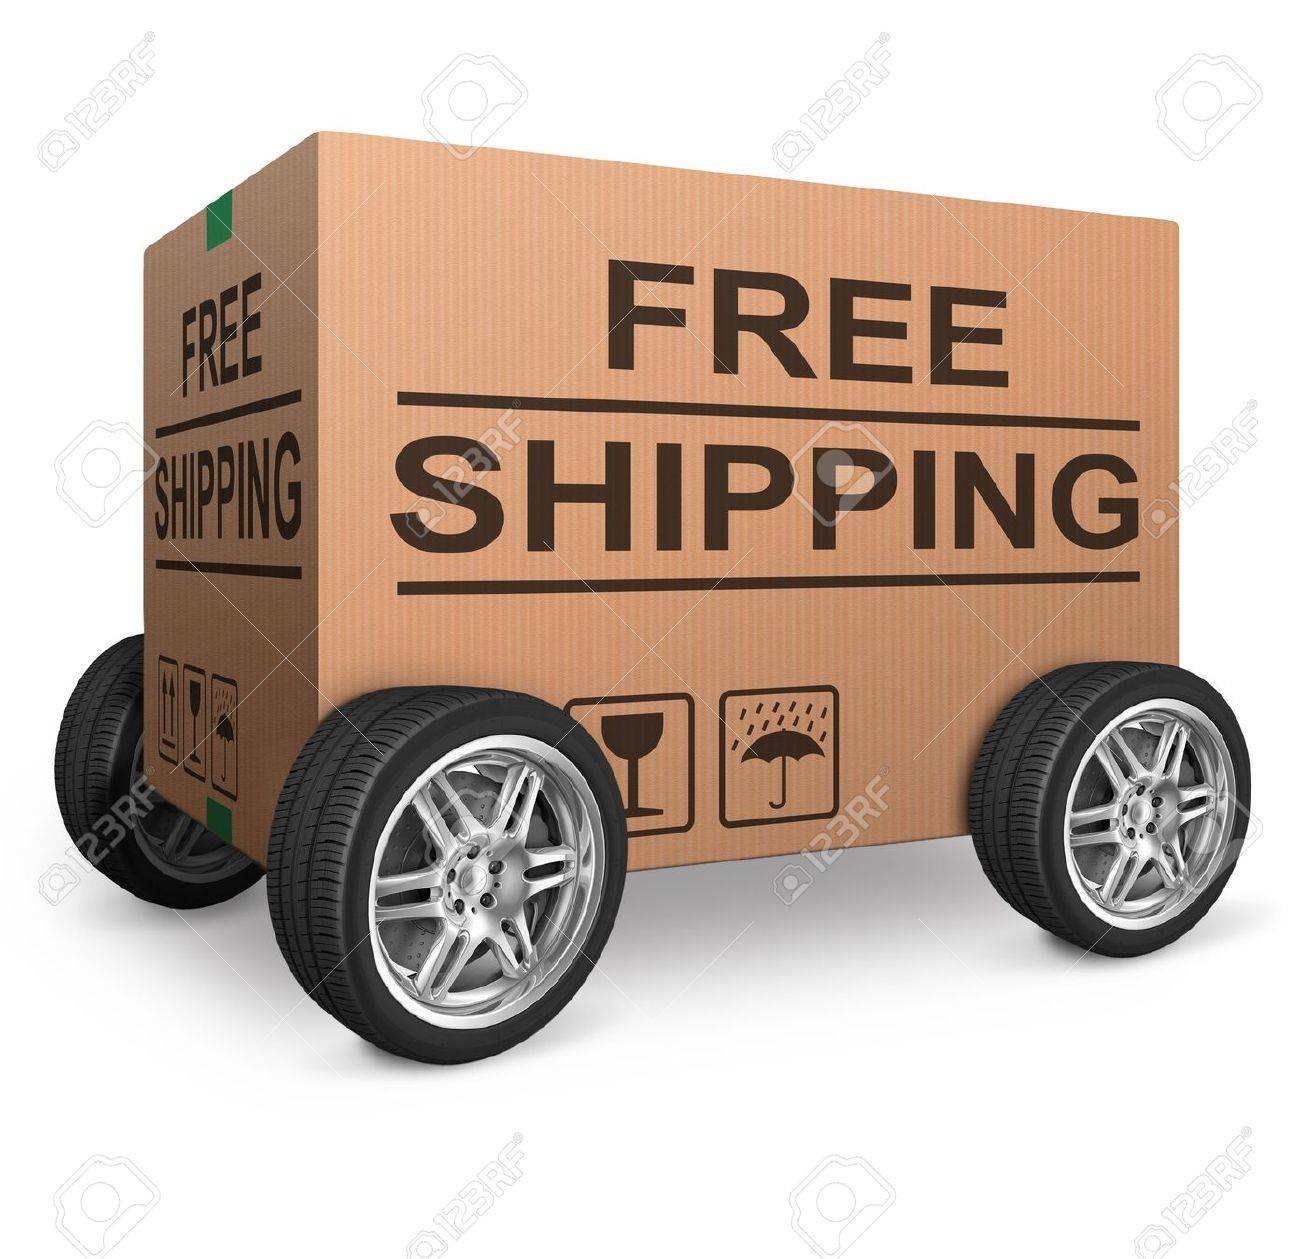 680ee1596ed5 Cheap online shopping free shipping. Online shopping in Singapore  21  fashion websites ...